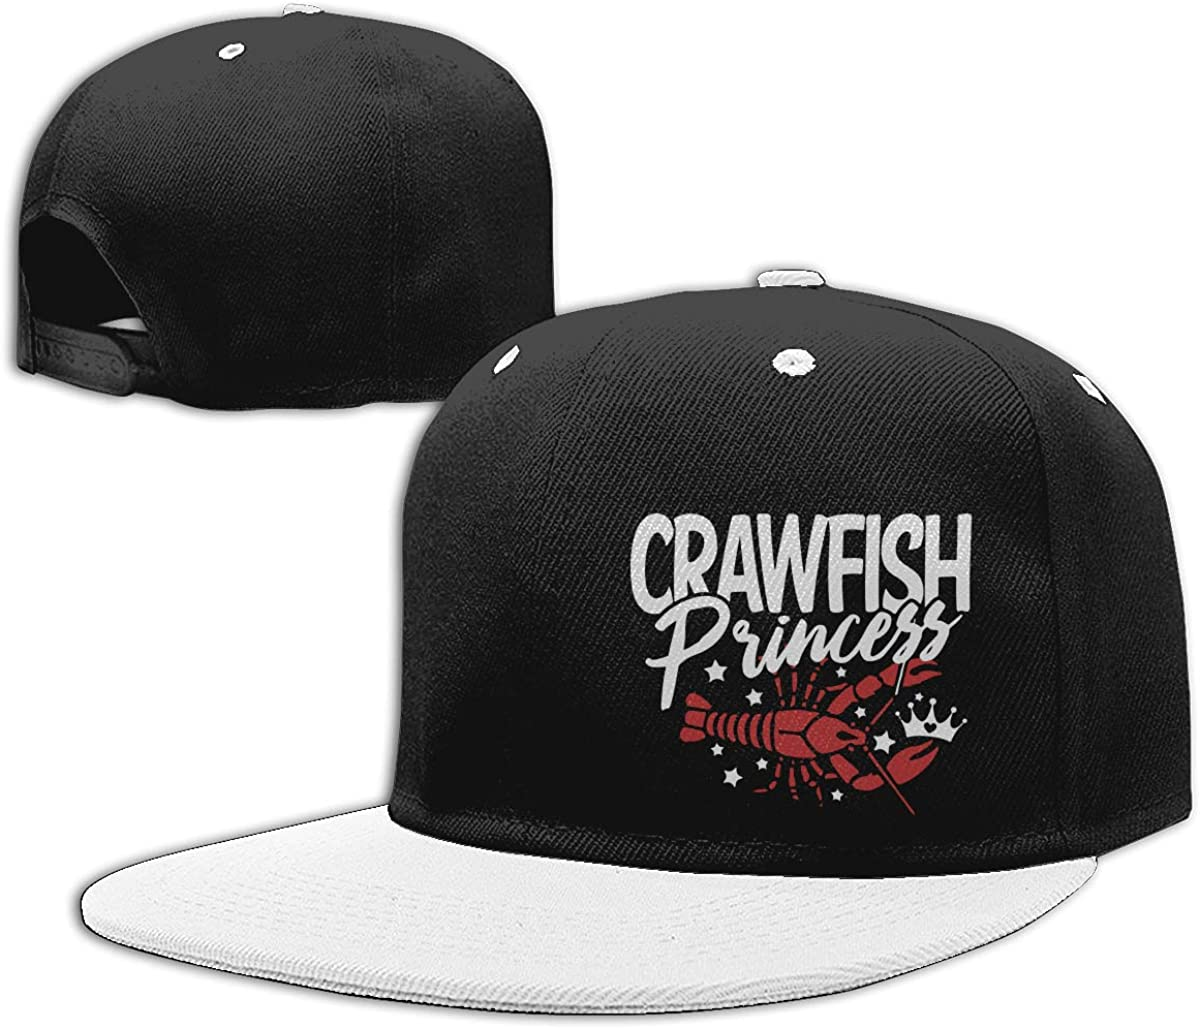 Crawfish Princess Cajun Boil Adults Flat Peaked Baseball Caps Men Womens Punk Rock Cap